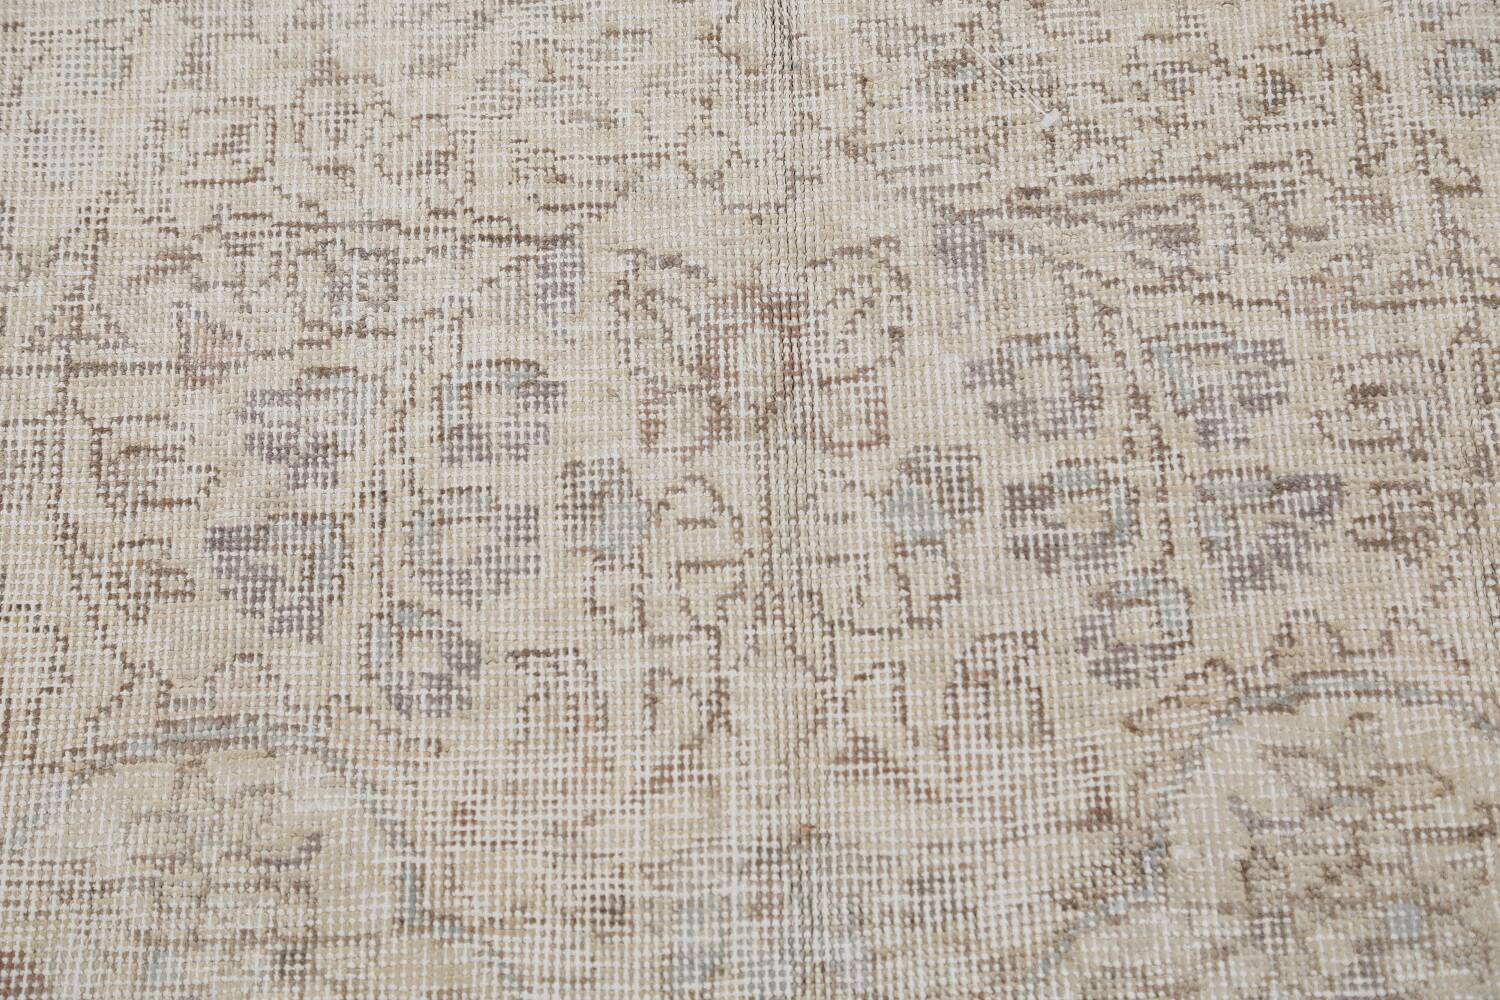 Muted Distressed Tabriz Persian Area Rug 8x11 image 9